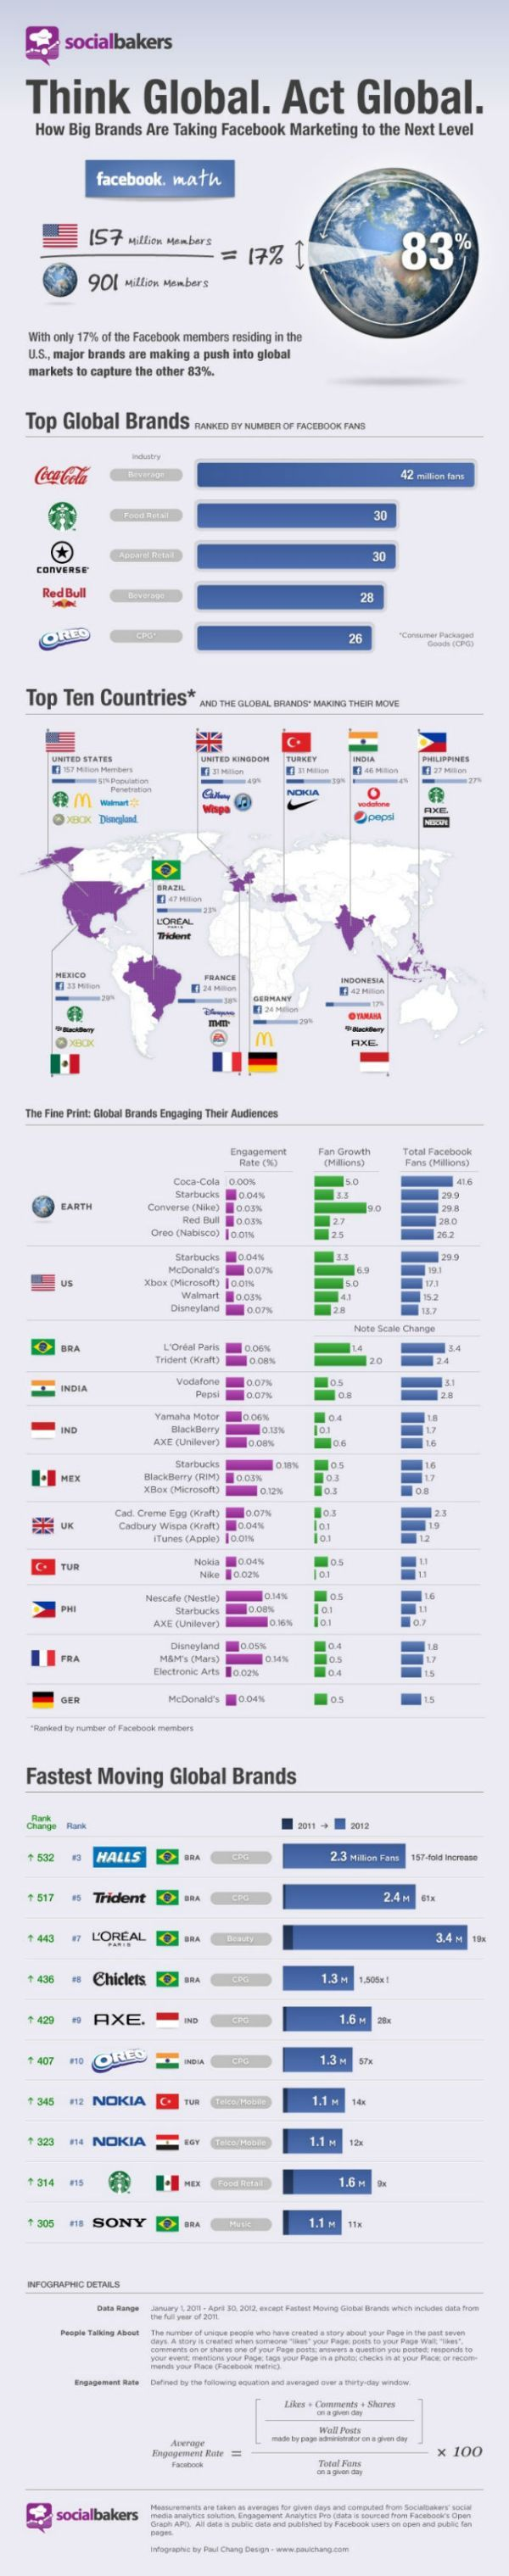 The most engaging global brands on Facebook